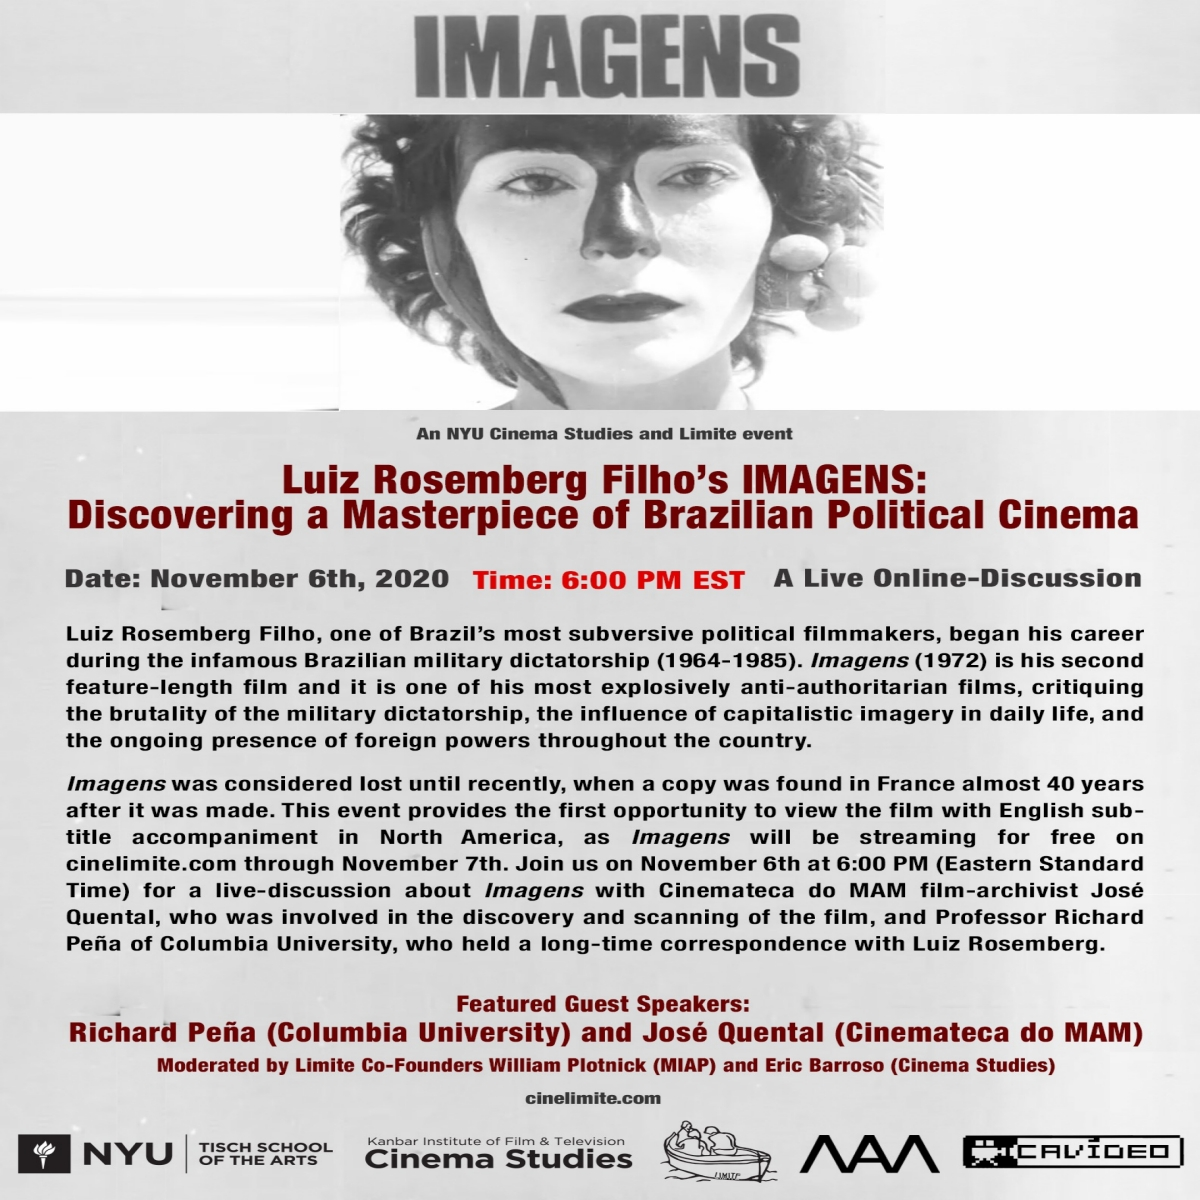 image of poster for IMAGENS, giving information regarding the event, with a film still at the top.